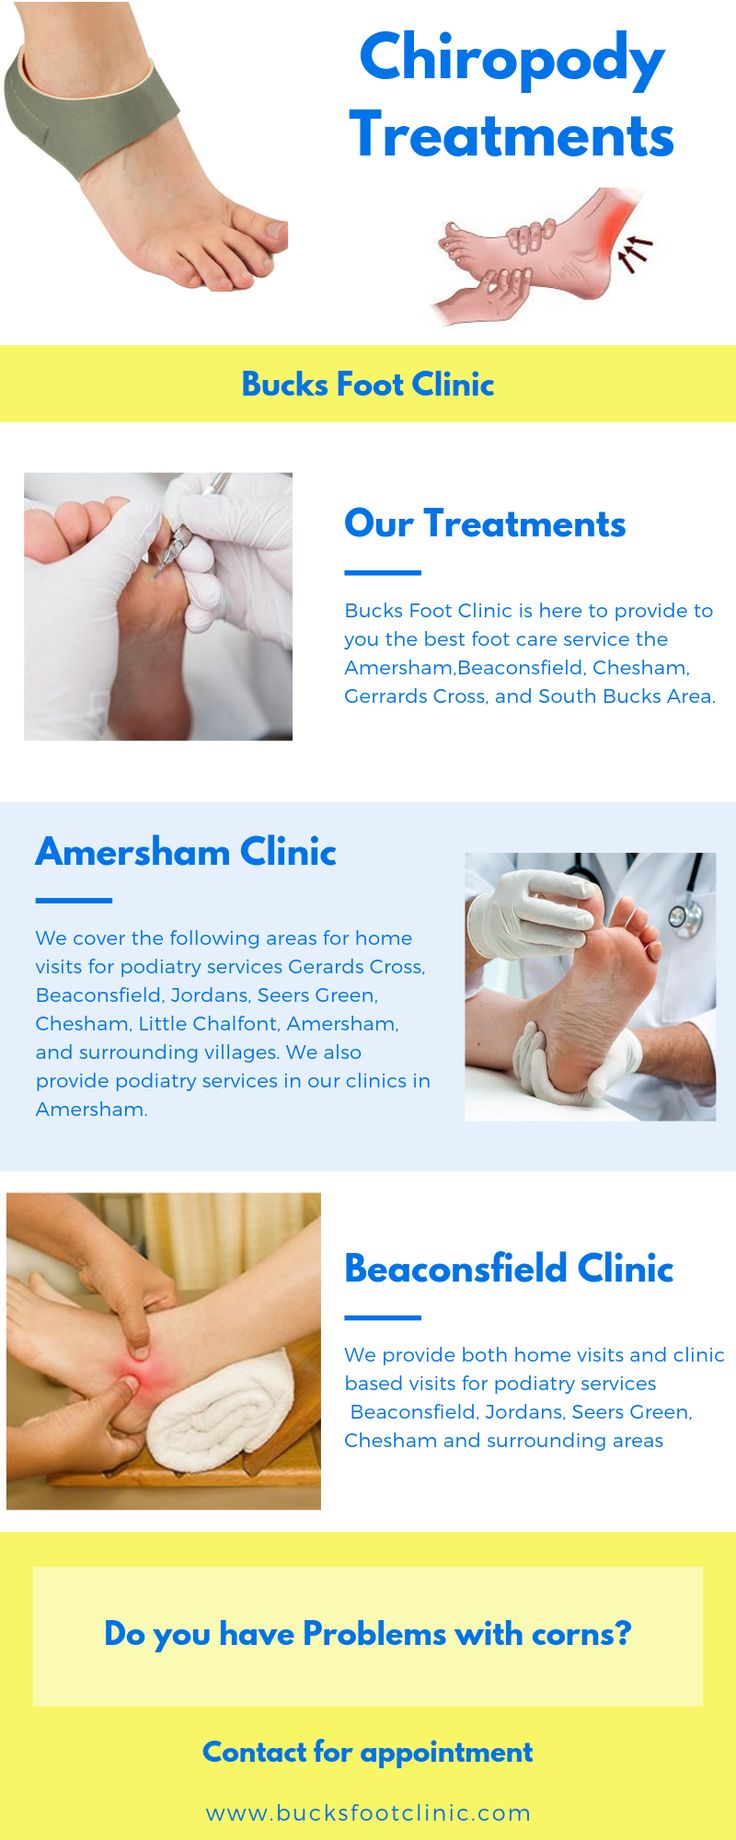 Leena Lakhani (With images) Podiatry, Feet care, Working